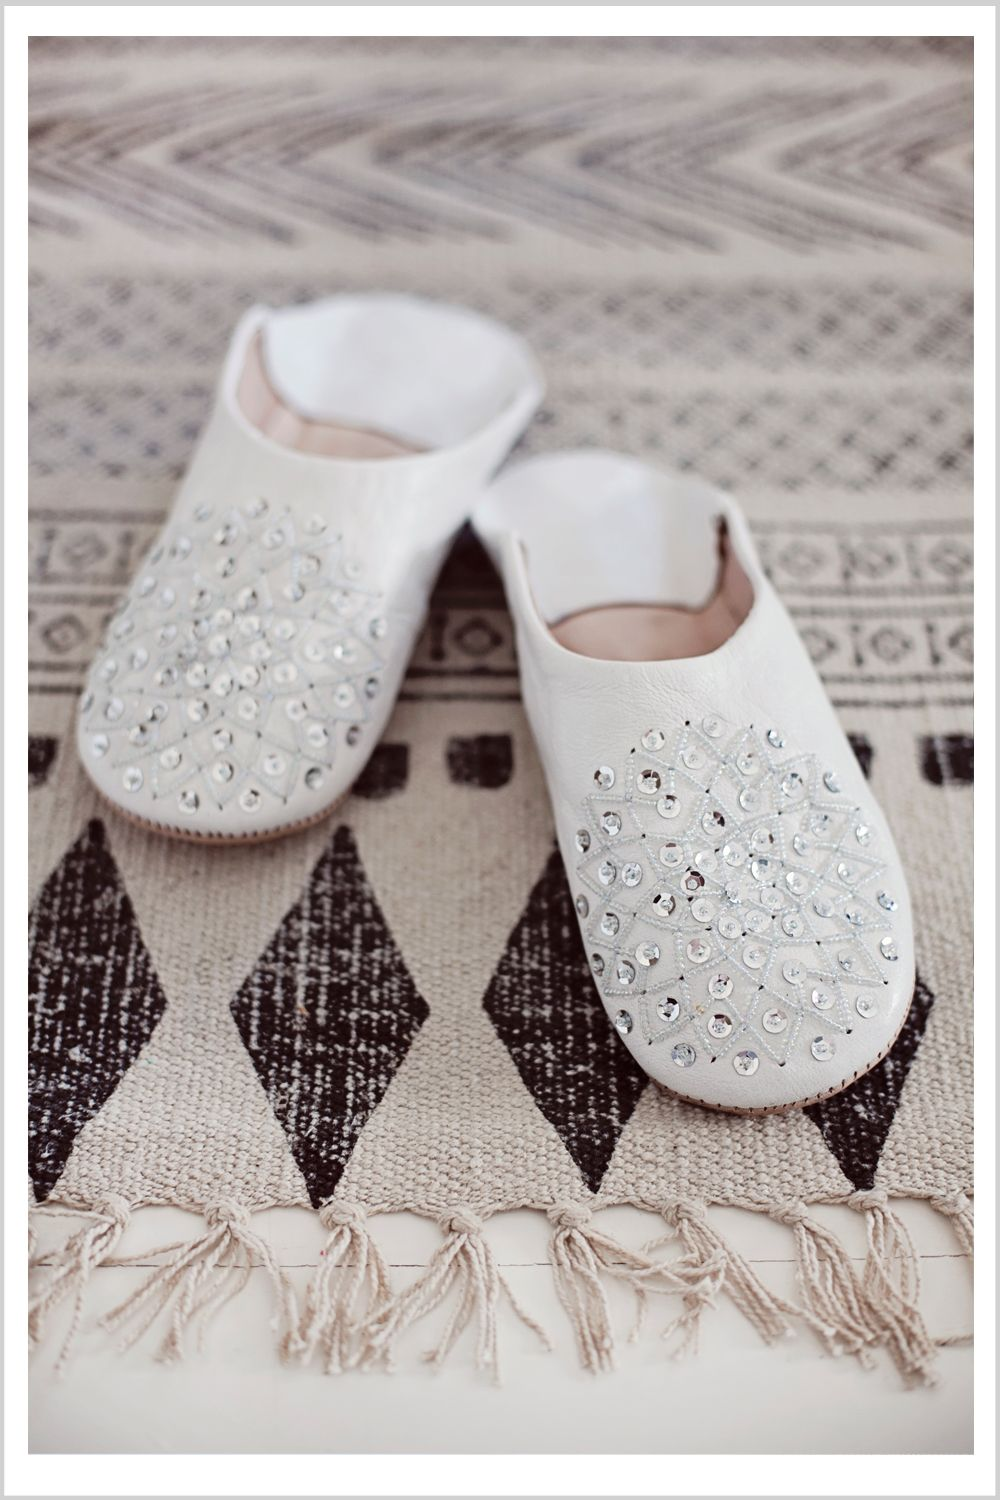 ... ♥. Find this Pin and more on SHOES by Marjolaine ... ae4d1c1ea